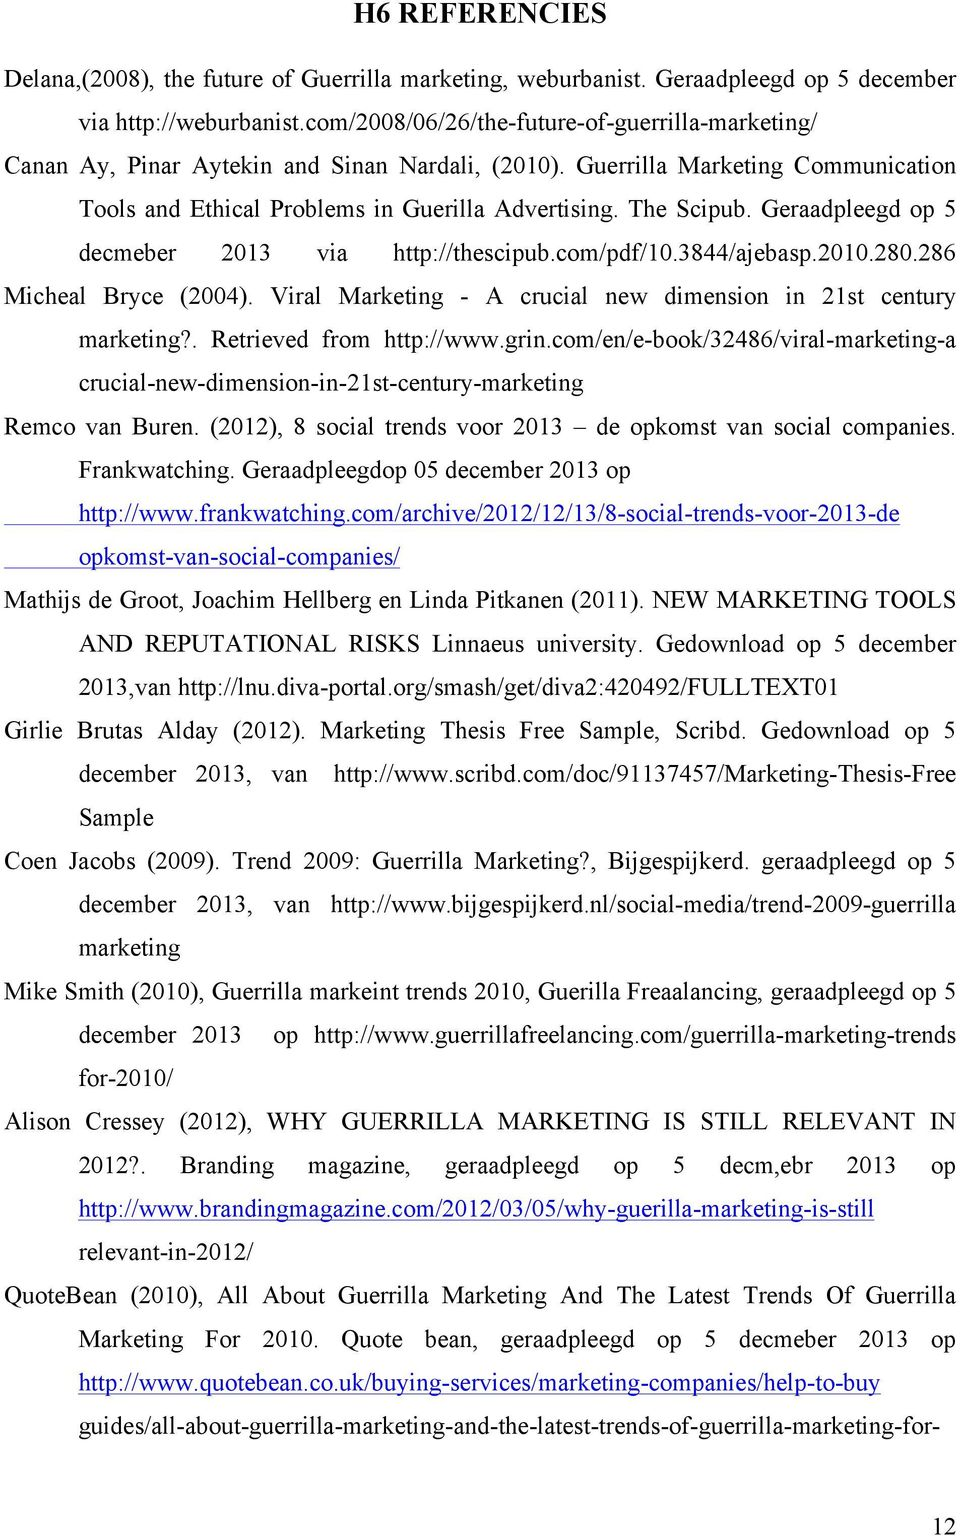 Geraadpleegd op 5 decmeber 2013 via http://thescipub.com/pdf/10.3844/ajebasp.2010.280.286 Micheal Bryce (2004). Viral Marketing - A crucial new dimension in 21st century marketing?